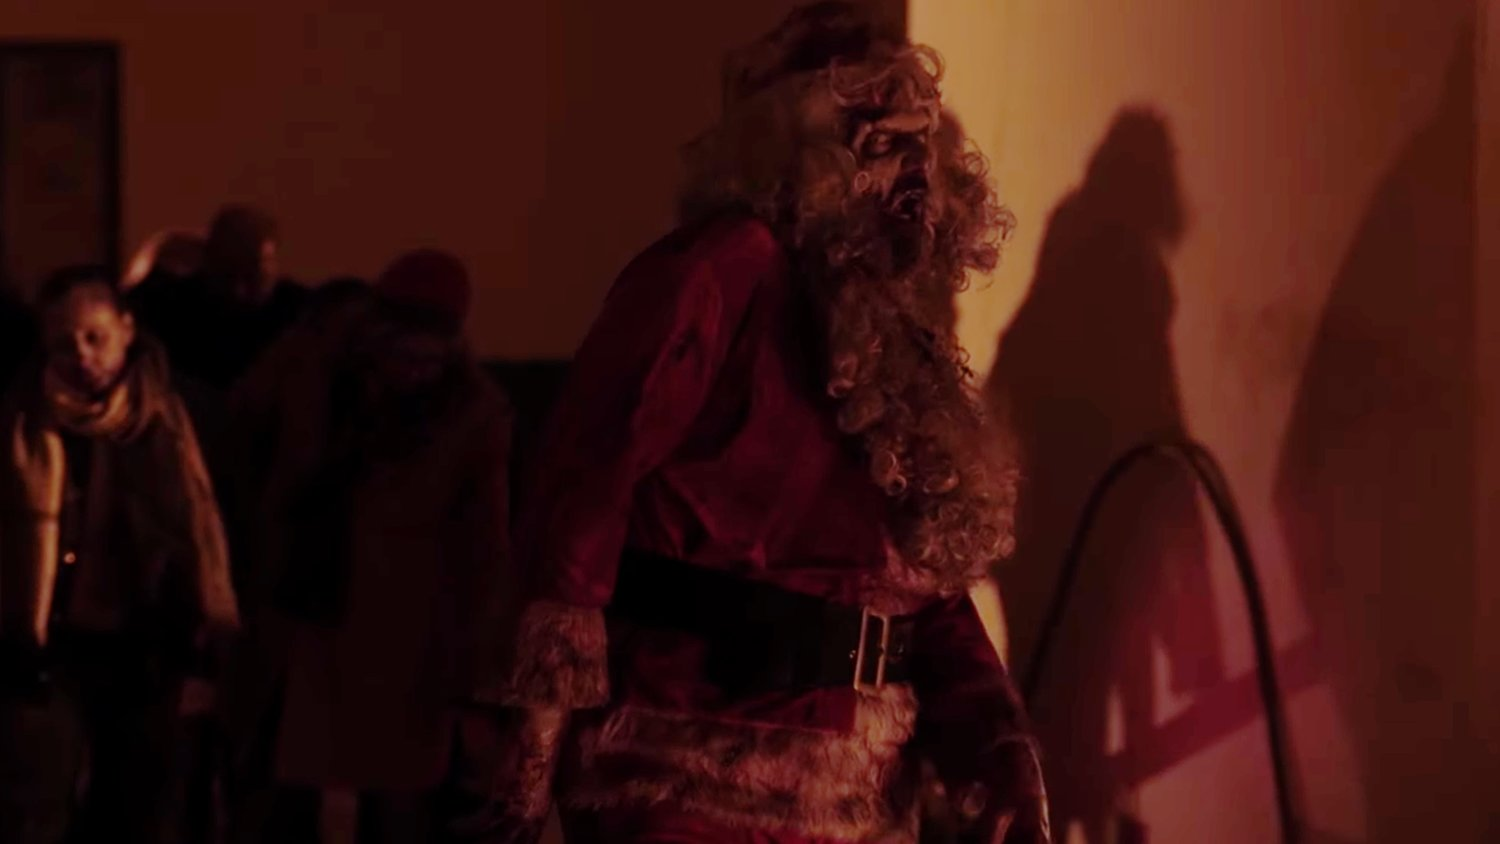 Zombie Christmas Musical.The Christmas Zombie Musical Anna And The Apocalypse Gets A